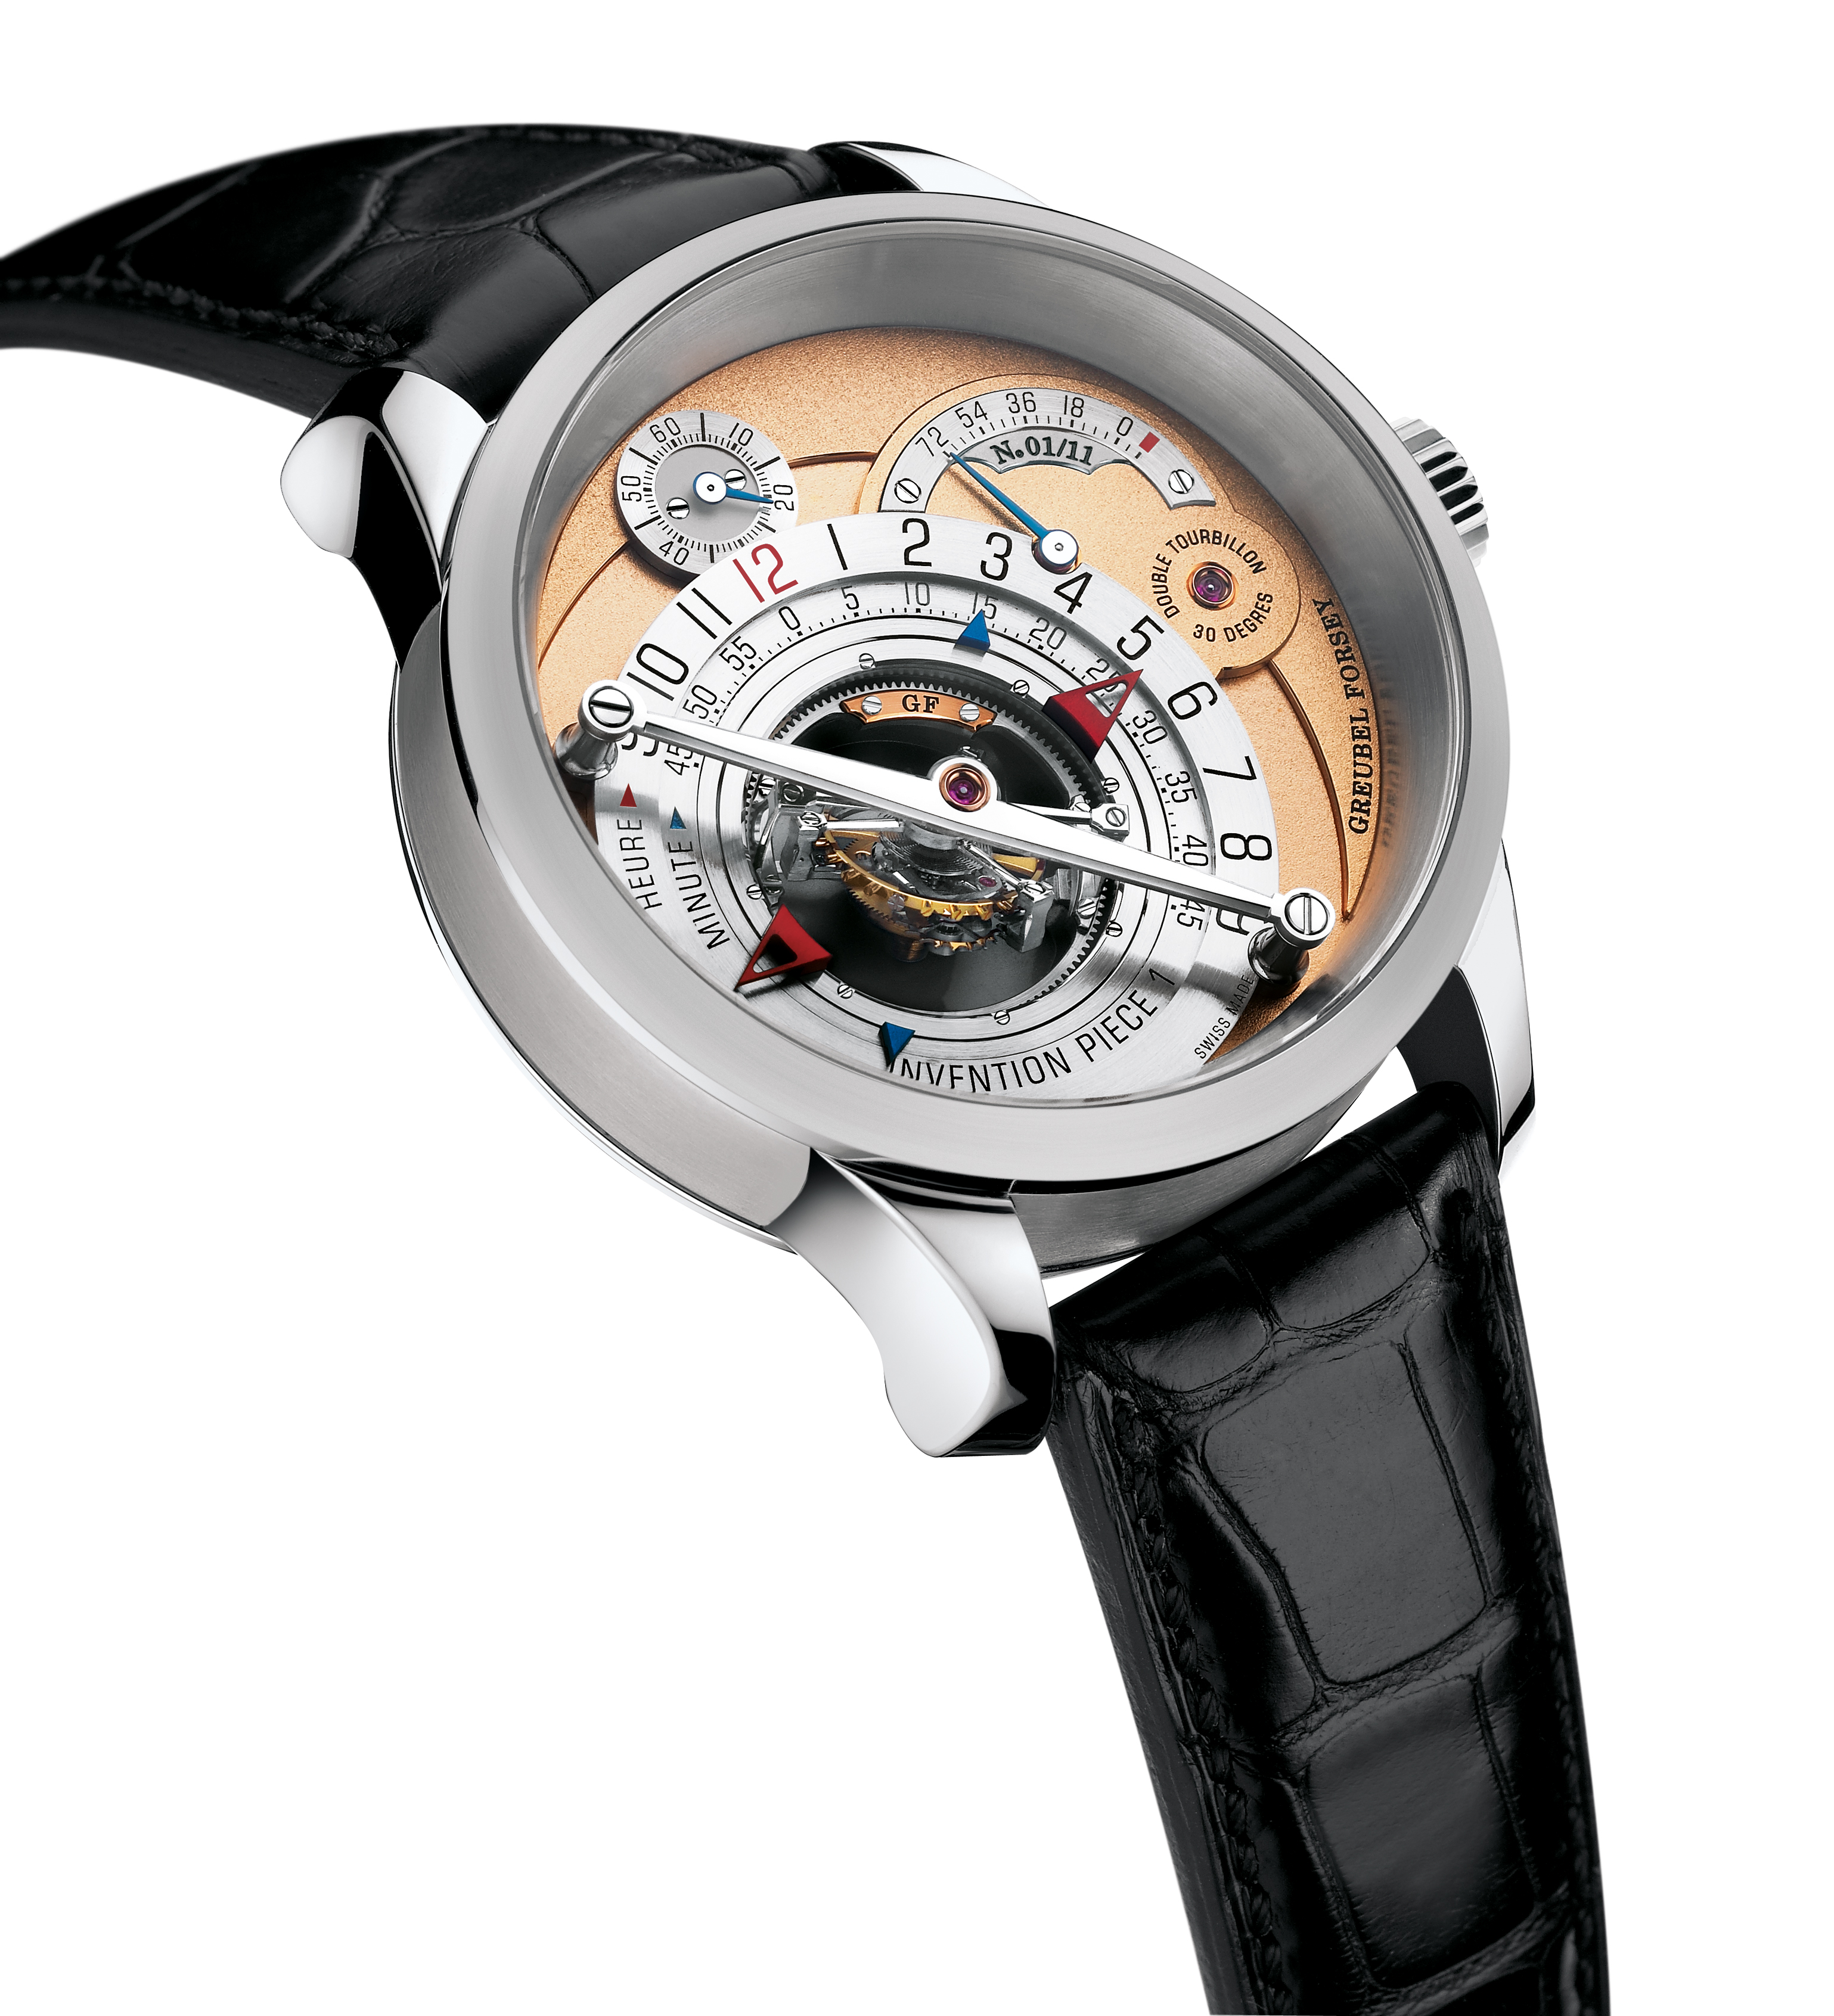 Greubel Forsey GMT Greubel_Forsey_Invention_Piece_1